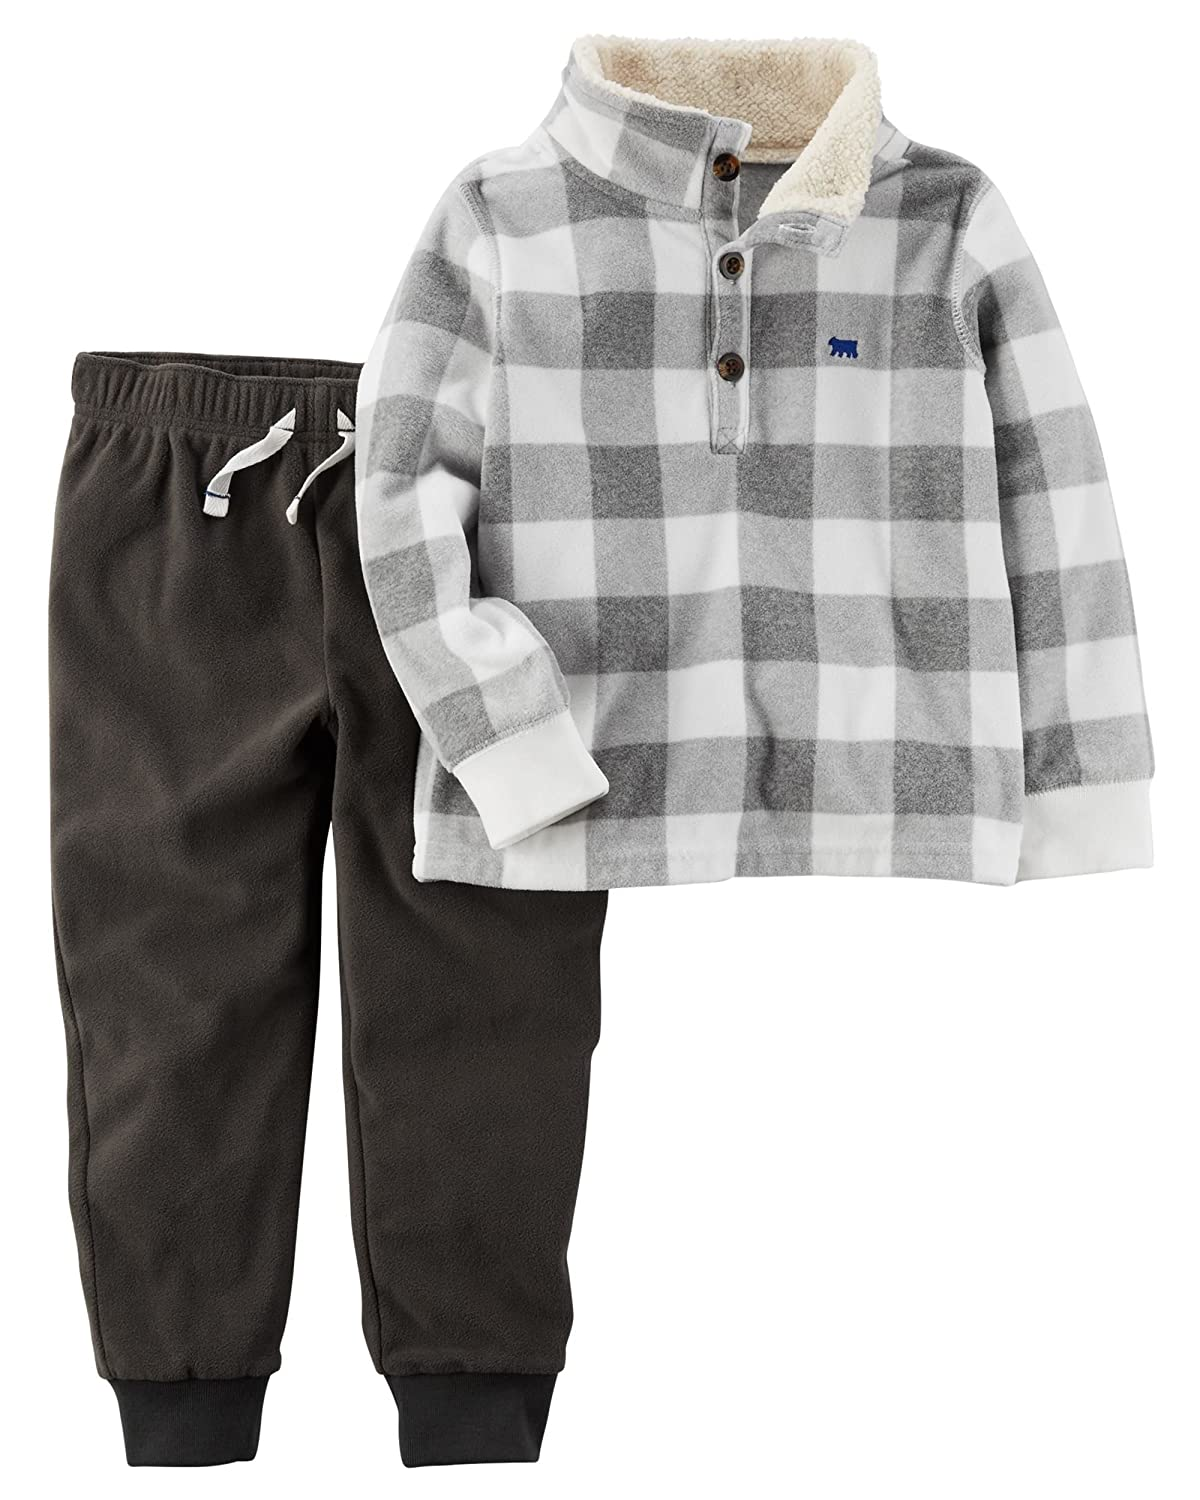 Carter's Boys' 3M-4T 2 Piece Long Sleeve Top and Pants Set Carters